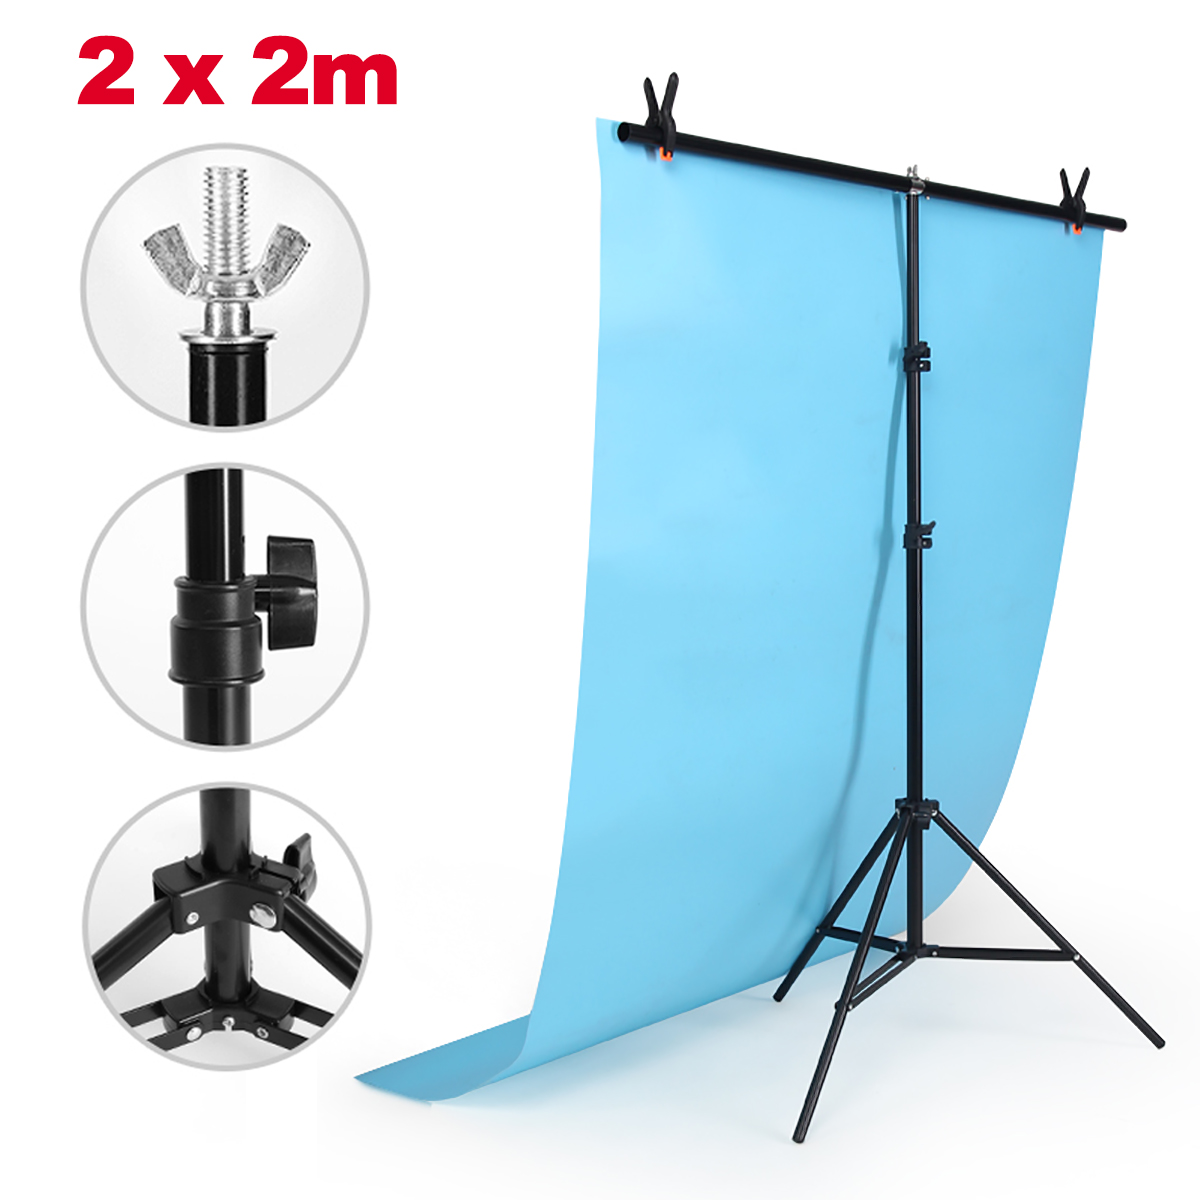 2*2m Adjustable Background Support Stand Photo Backdrop Crossbar Kit Photography photo studio 2 6 3m adjustable background support stand photo backdrop crossbar kit photography equipment